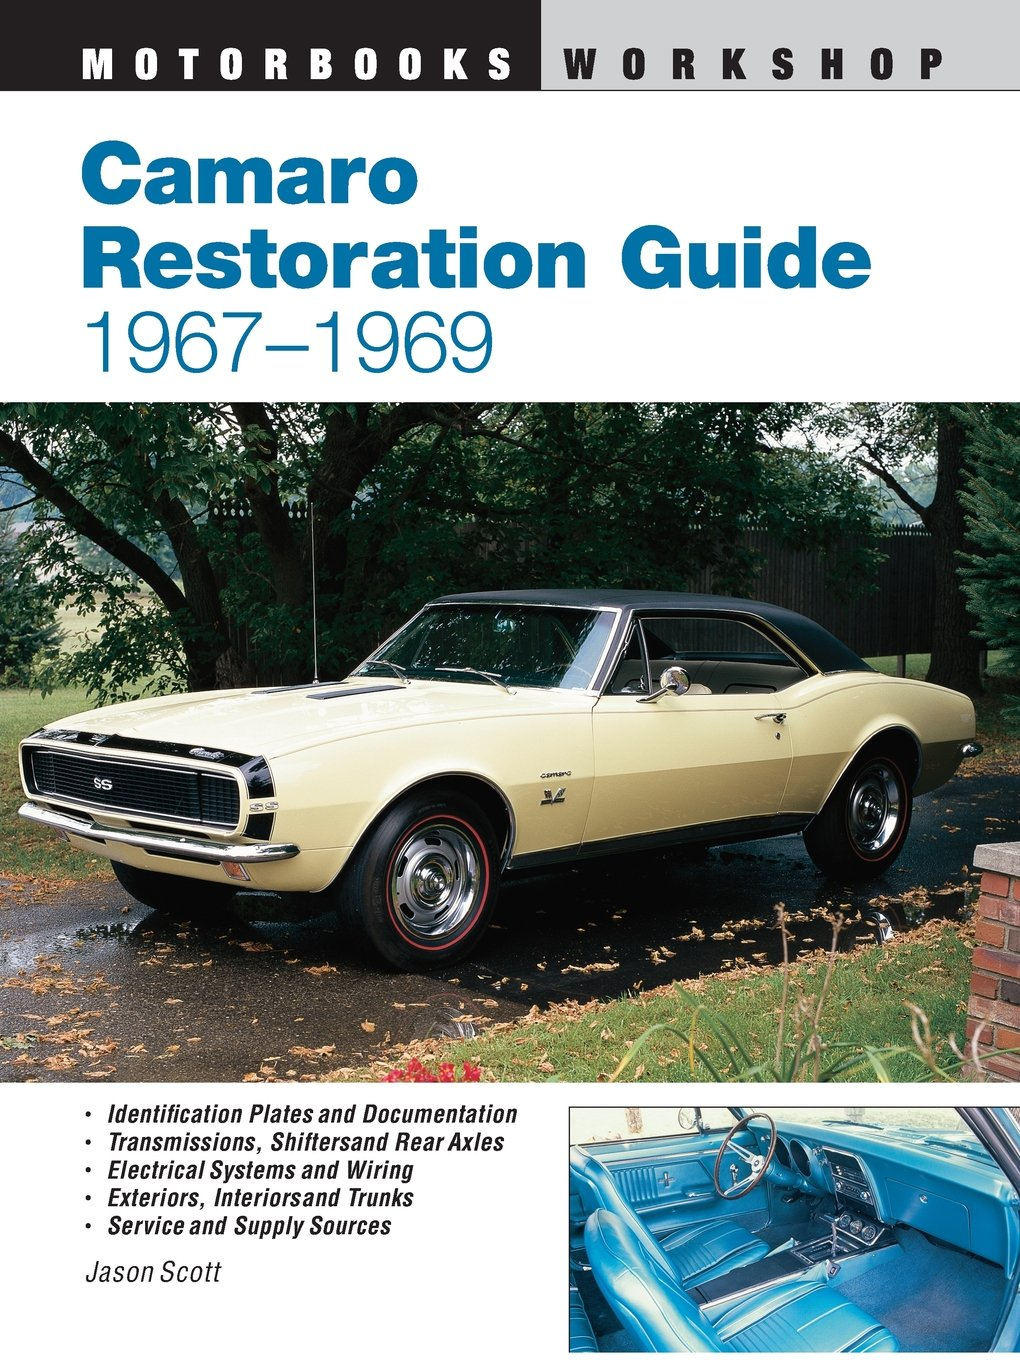 Camaro Restoration Guide, 1967-1969 (Motorbooks Workshop): Jason Scott:  0752748301603: Amazon.com: Books